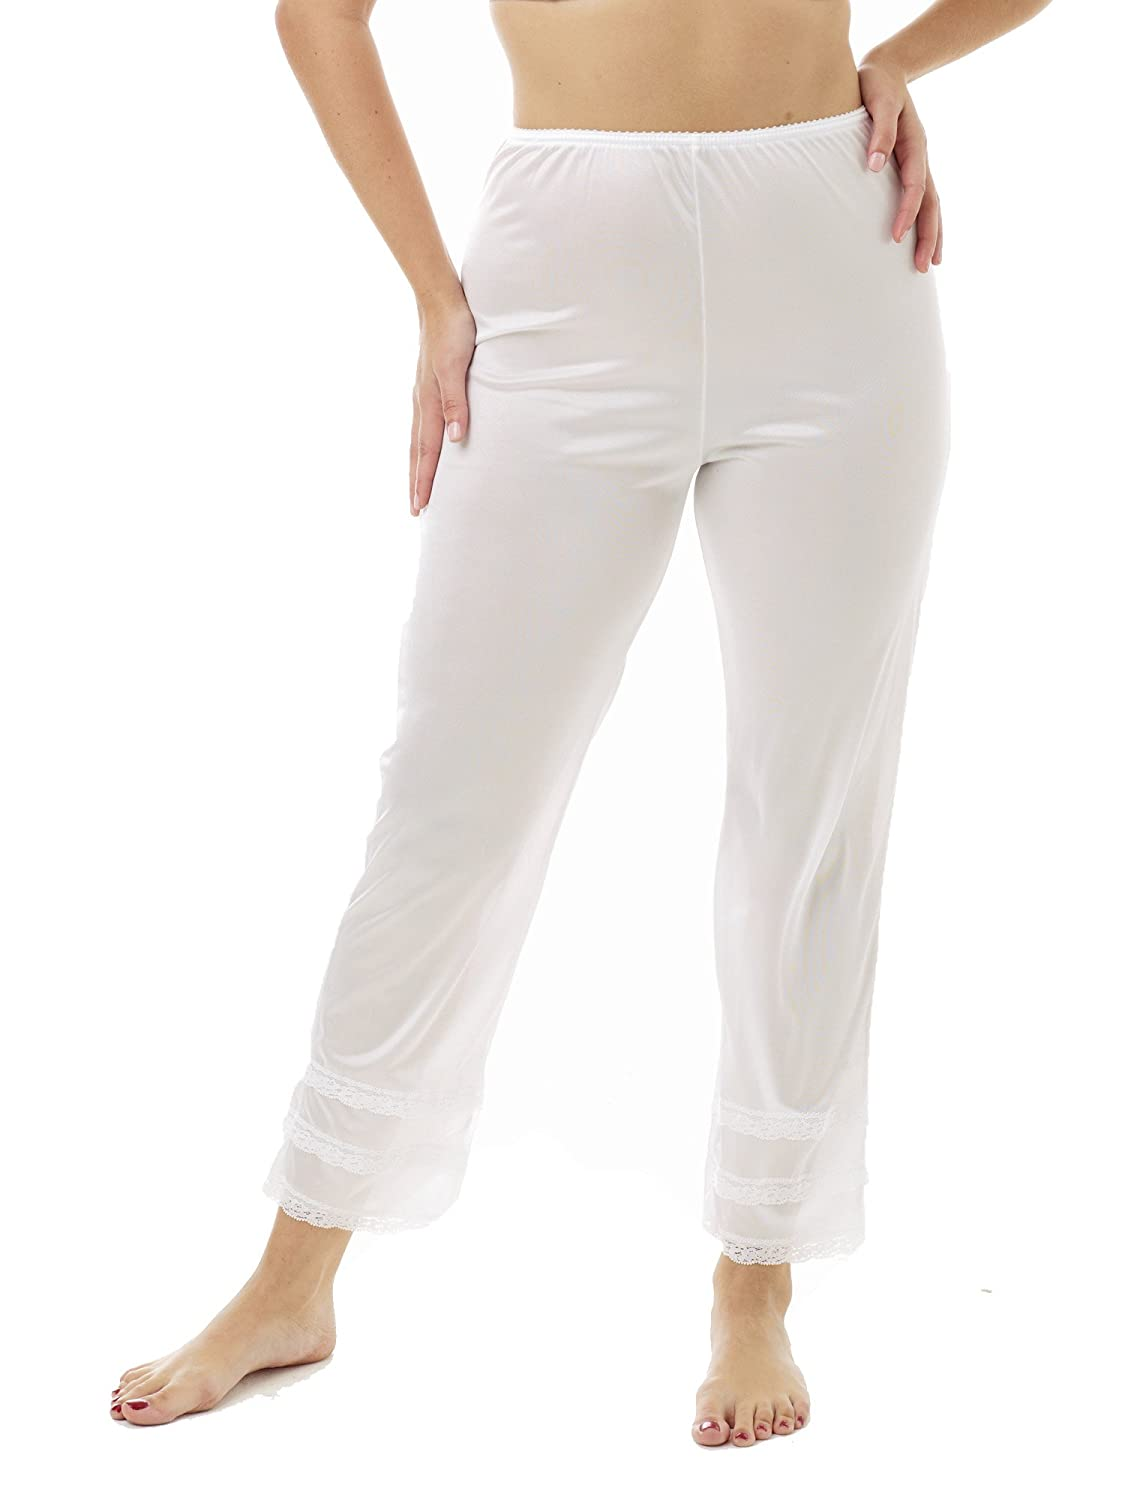 a42a7826e6 Underworks nylon ankle length pantliner pant slip with snip a length at  amazon womens clothing store